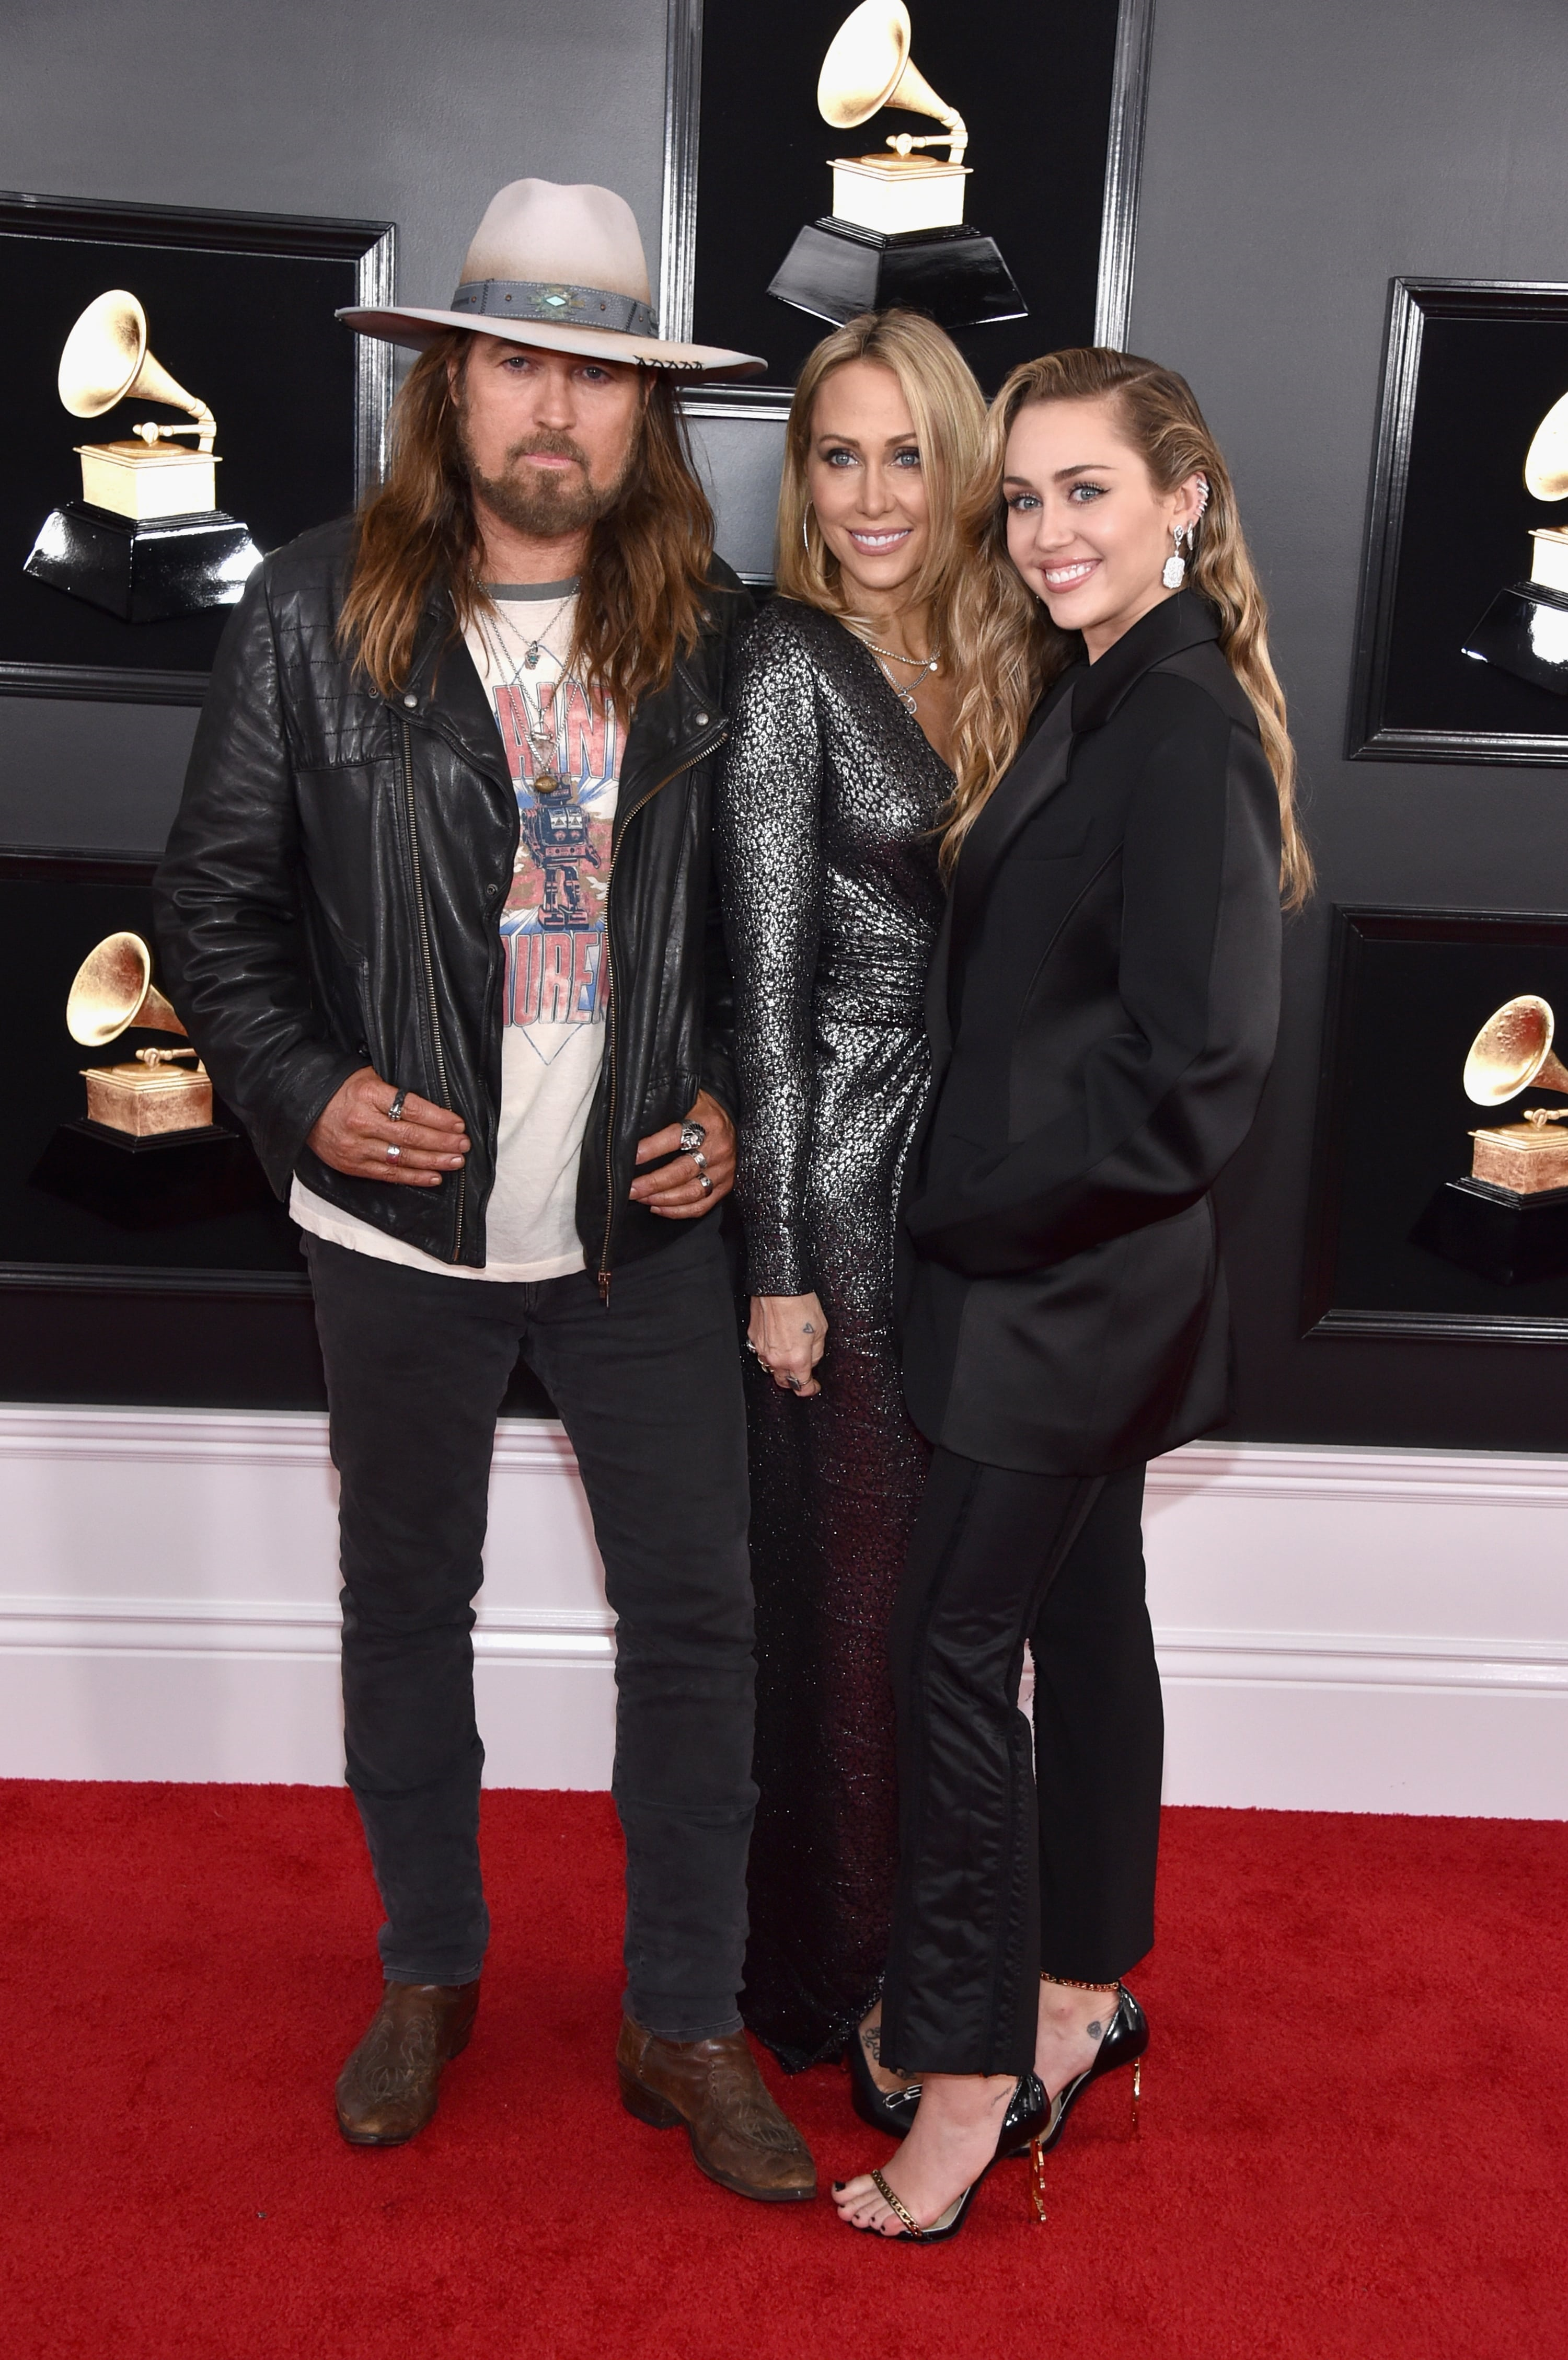 LOS ANGELES, CA - FEBRUARY 10: (L-R) Billy Ray Cyrus, Tish Cyrus, and Miley Cyrus attend the 61st Annual GRAMMY Awards at Staples Center on February 10, 2019 in Los Angeles, California. (Photo by John Shearer/Getty Images for The Recording Academy)